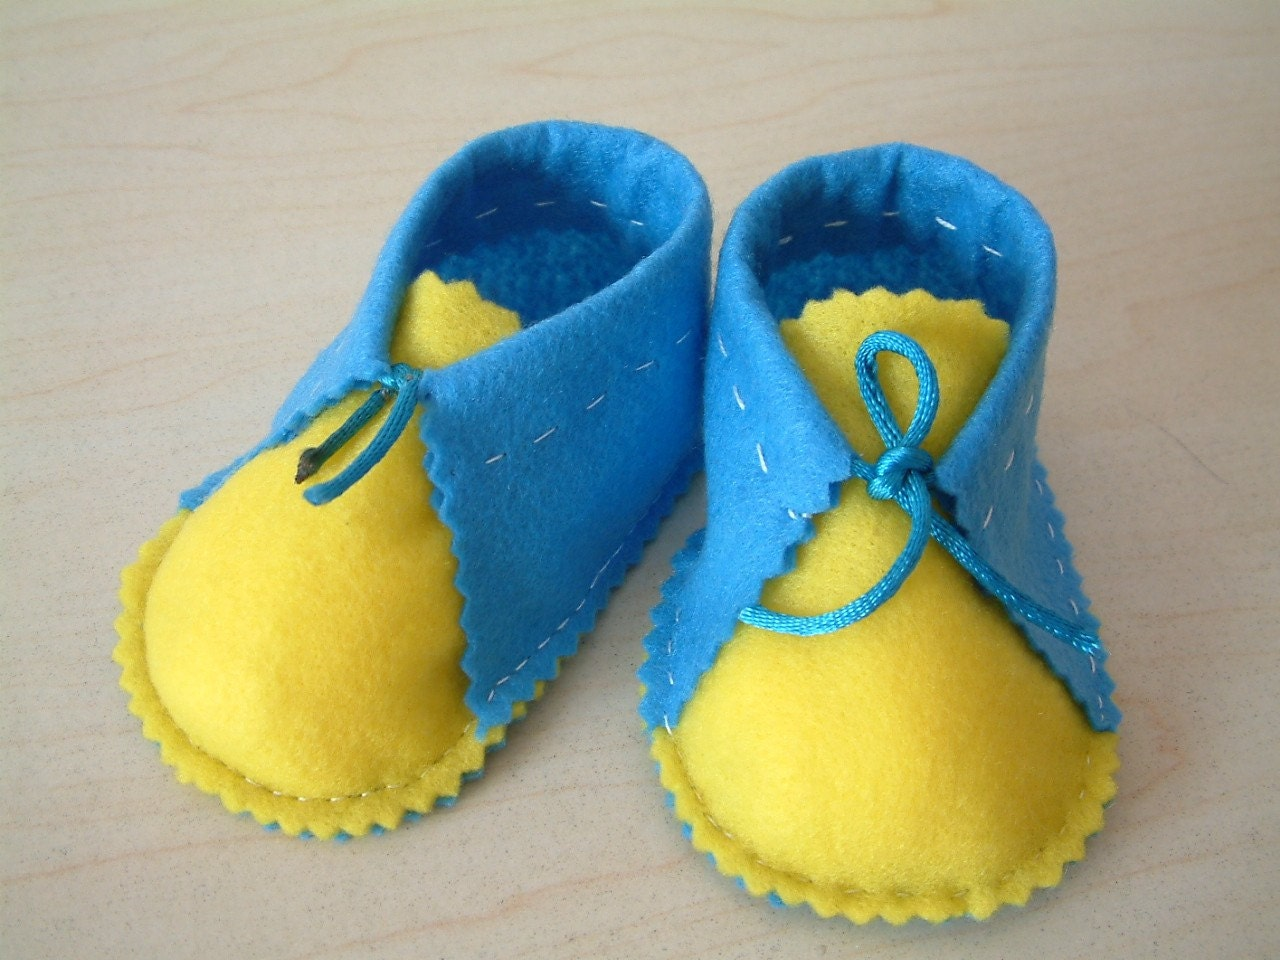 Easy Sewing Diy Felt Baby Shoes Pdf Pattern6 Different